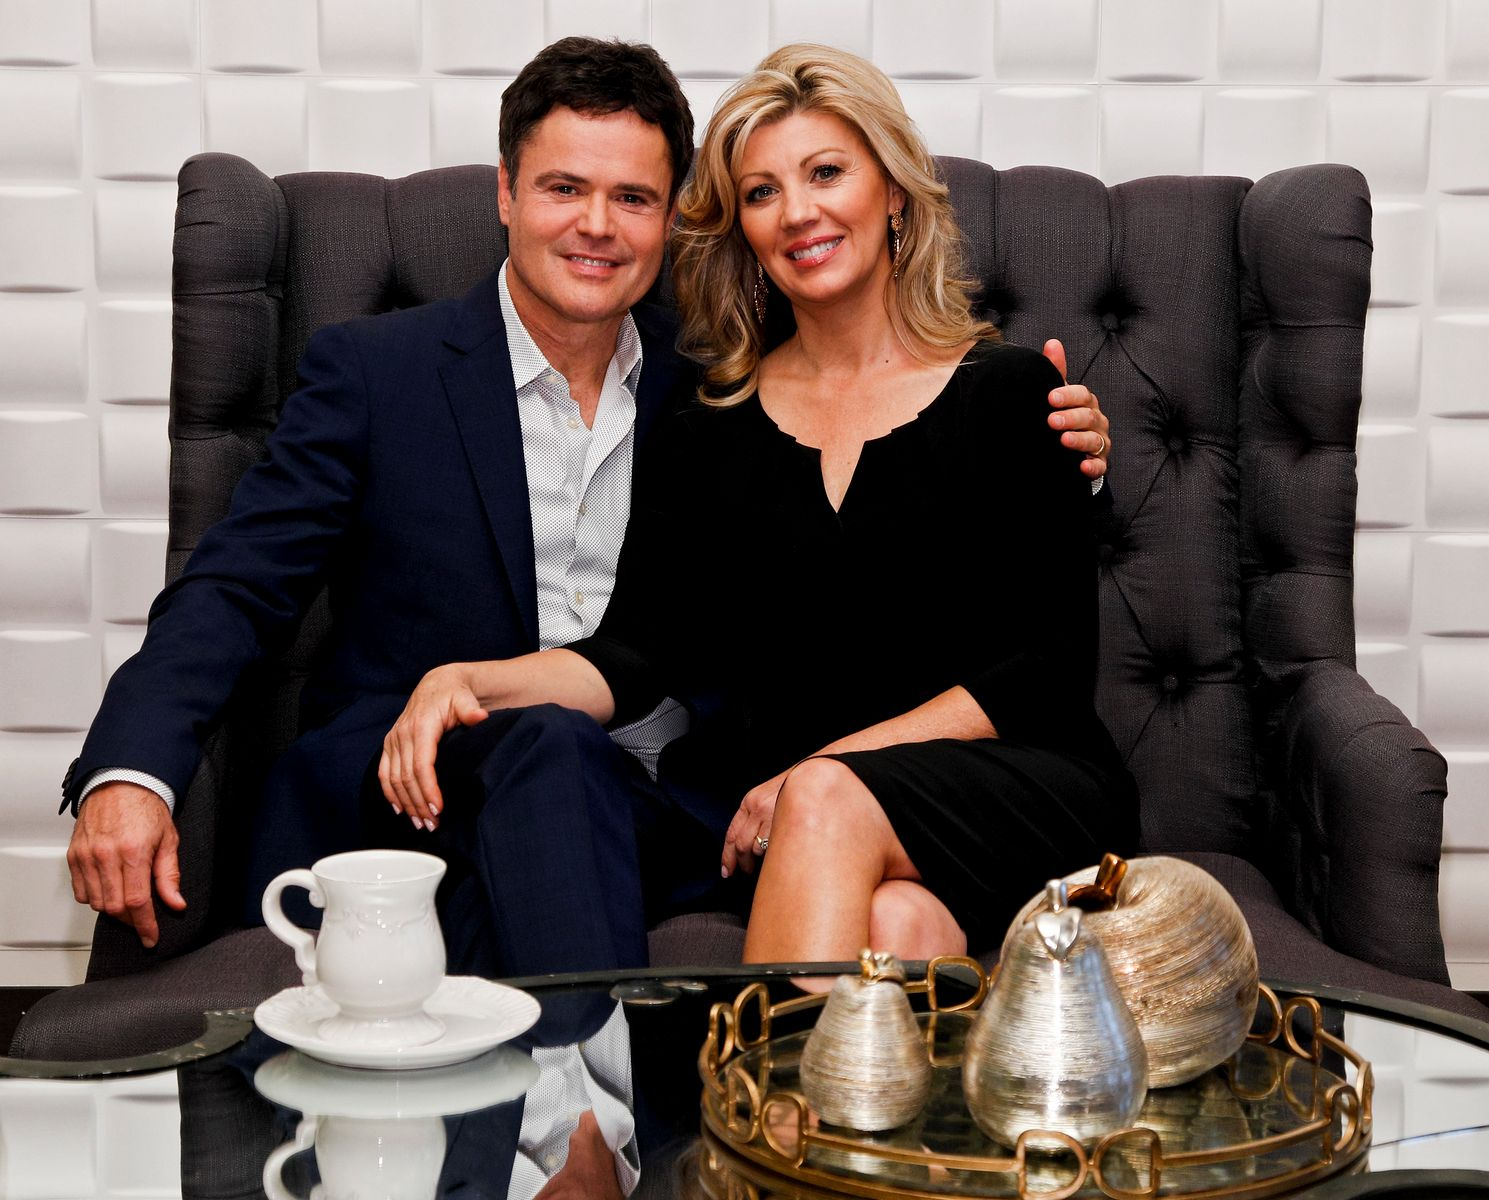 Donny and Debbie Osmond at the launch of the Donny Osmond Home on September 23, 2013, in New York City   Photo: Brian Ach/WireImage/Getty Images